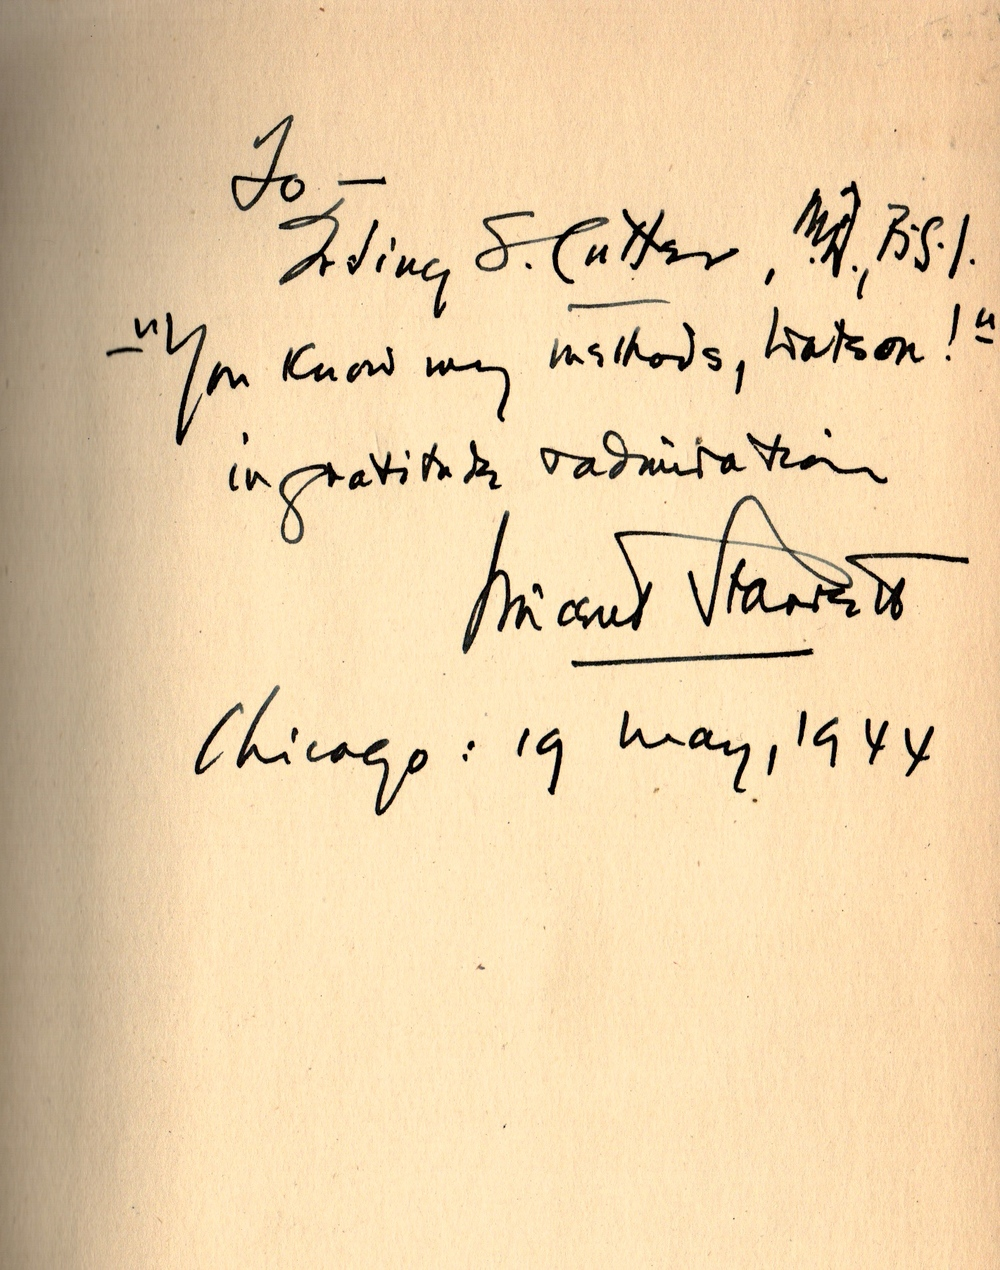 The inscription to Dr. Irving Cutter from a copy of Vincent Starrett's The Case-Book of Jimmie Lavender.